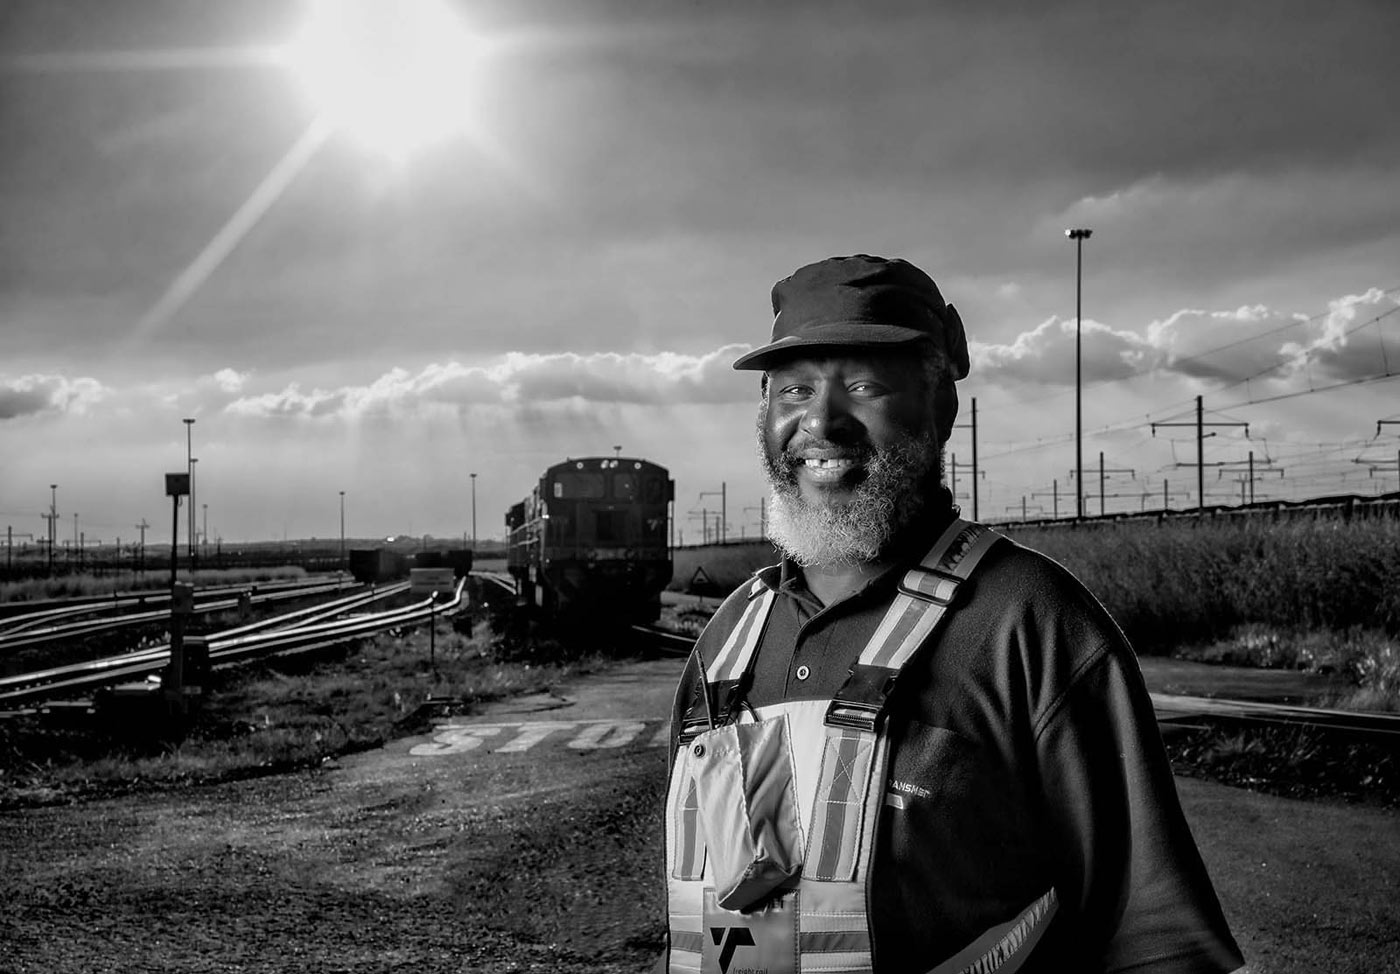 Portrait of a railways engineer by professional photographer Geoff Brown